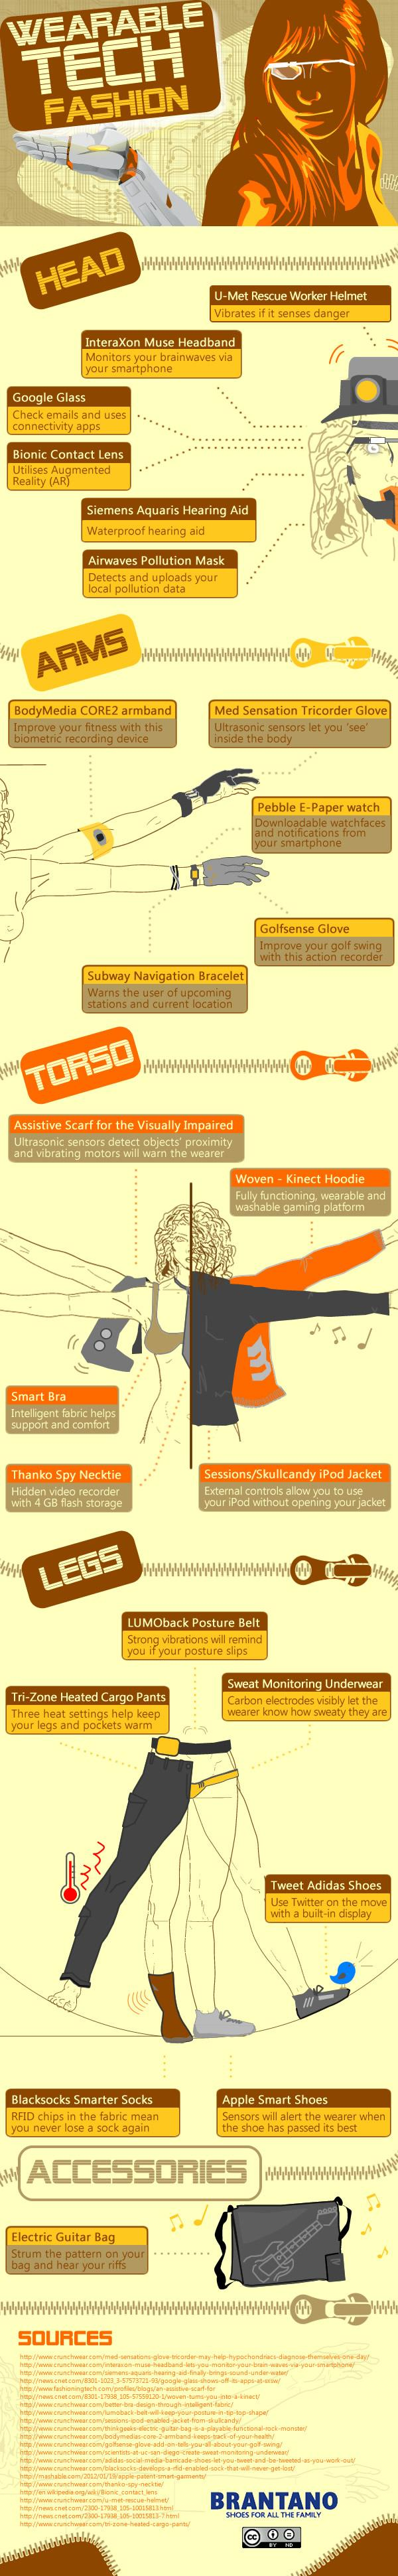 wearable-tech-fashion-infographic